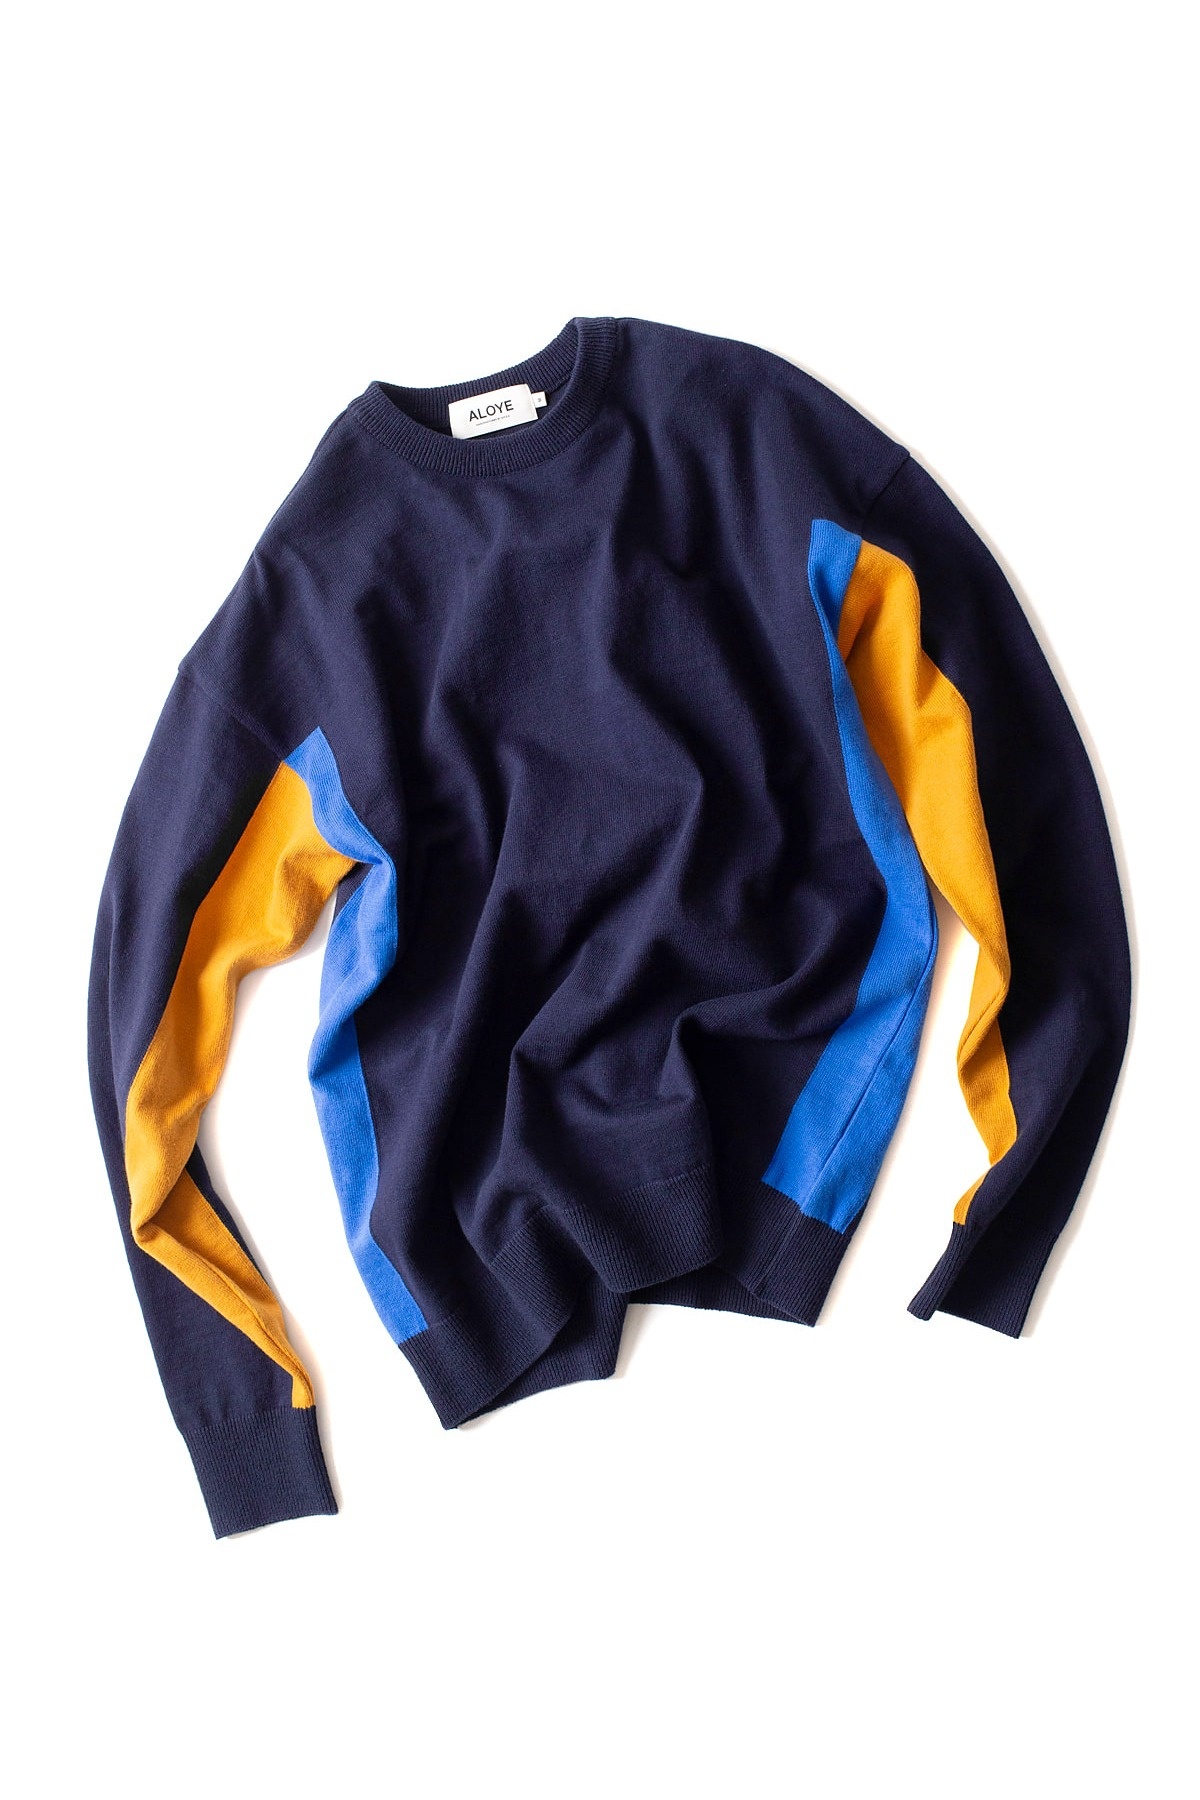 ALOYE : G.F.G.S Long Sleeve Cotton Knitted (Navy)